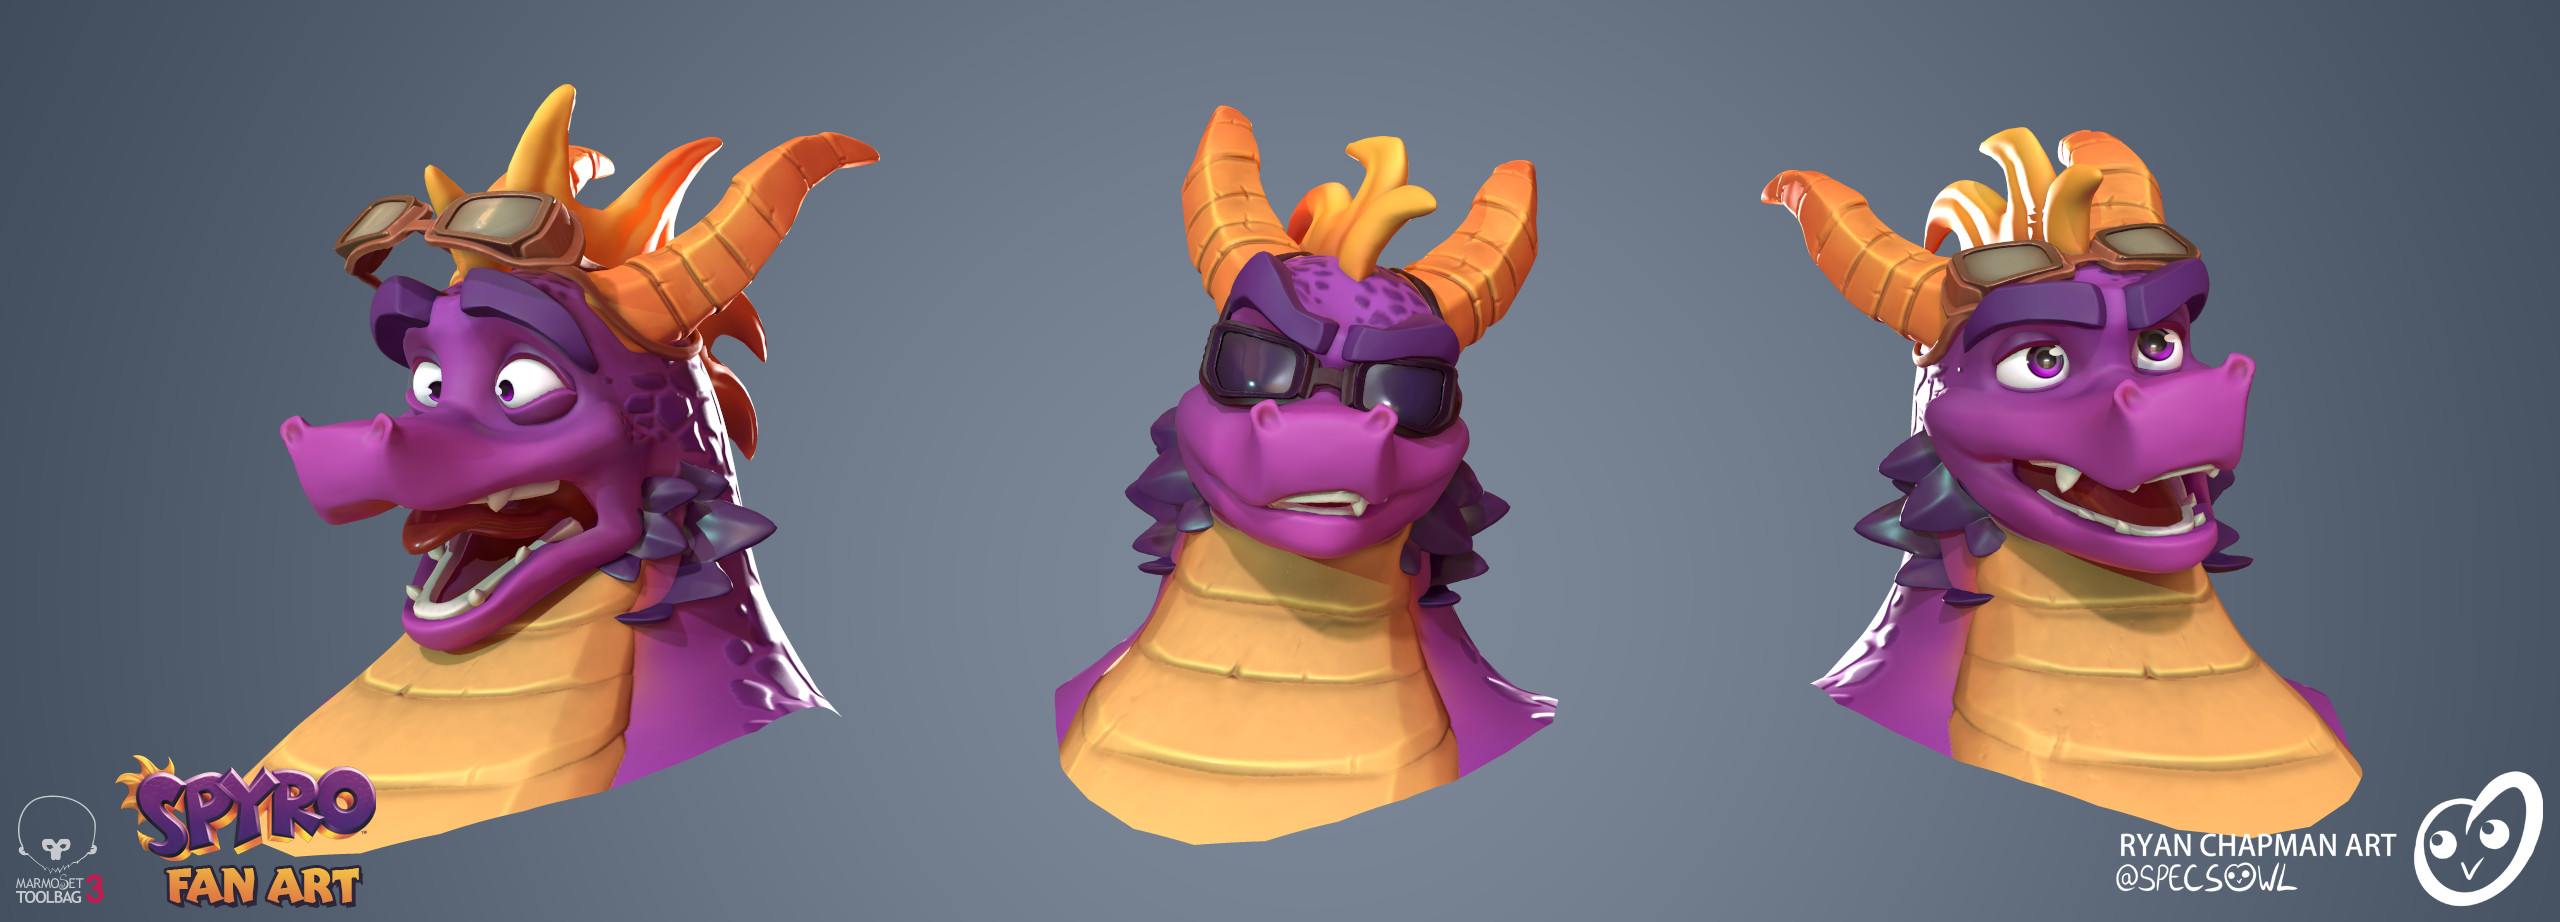 Various faces, sourced from original concept art and Spyro Reignited